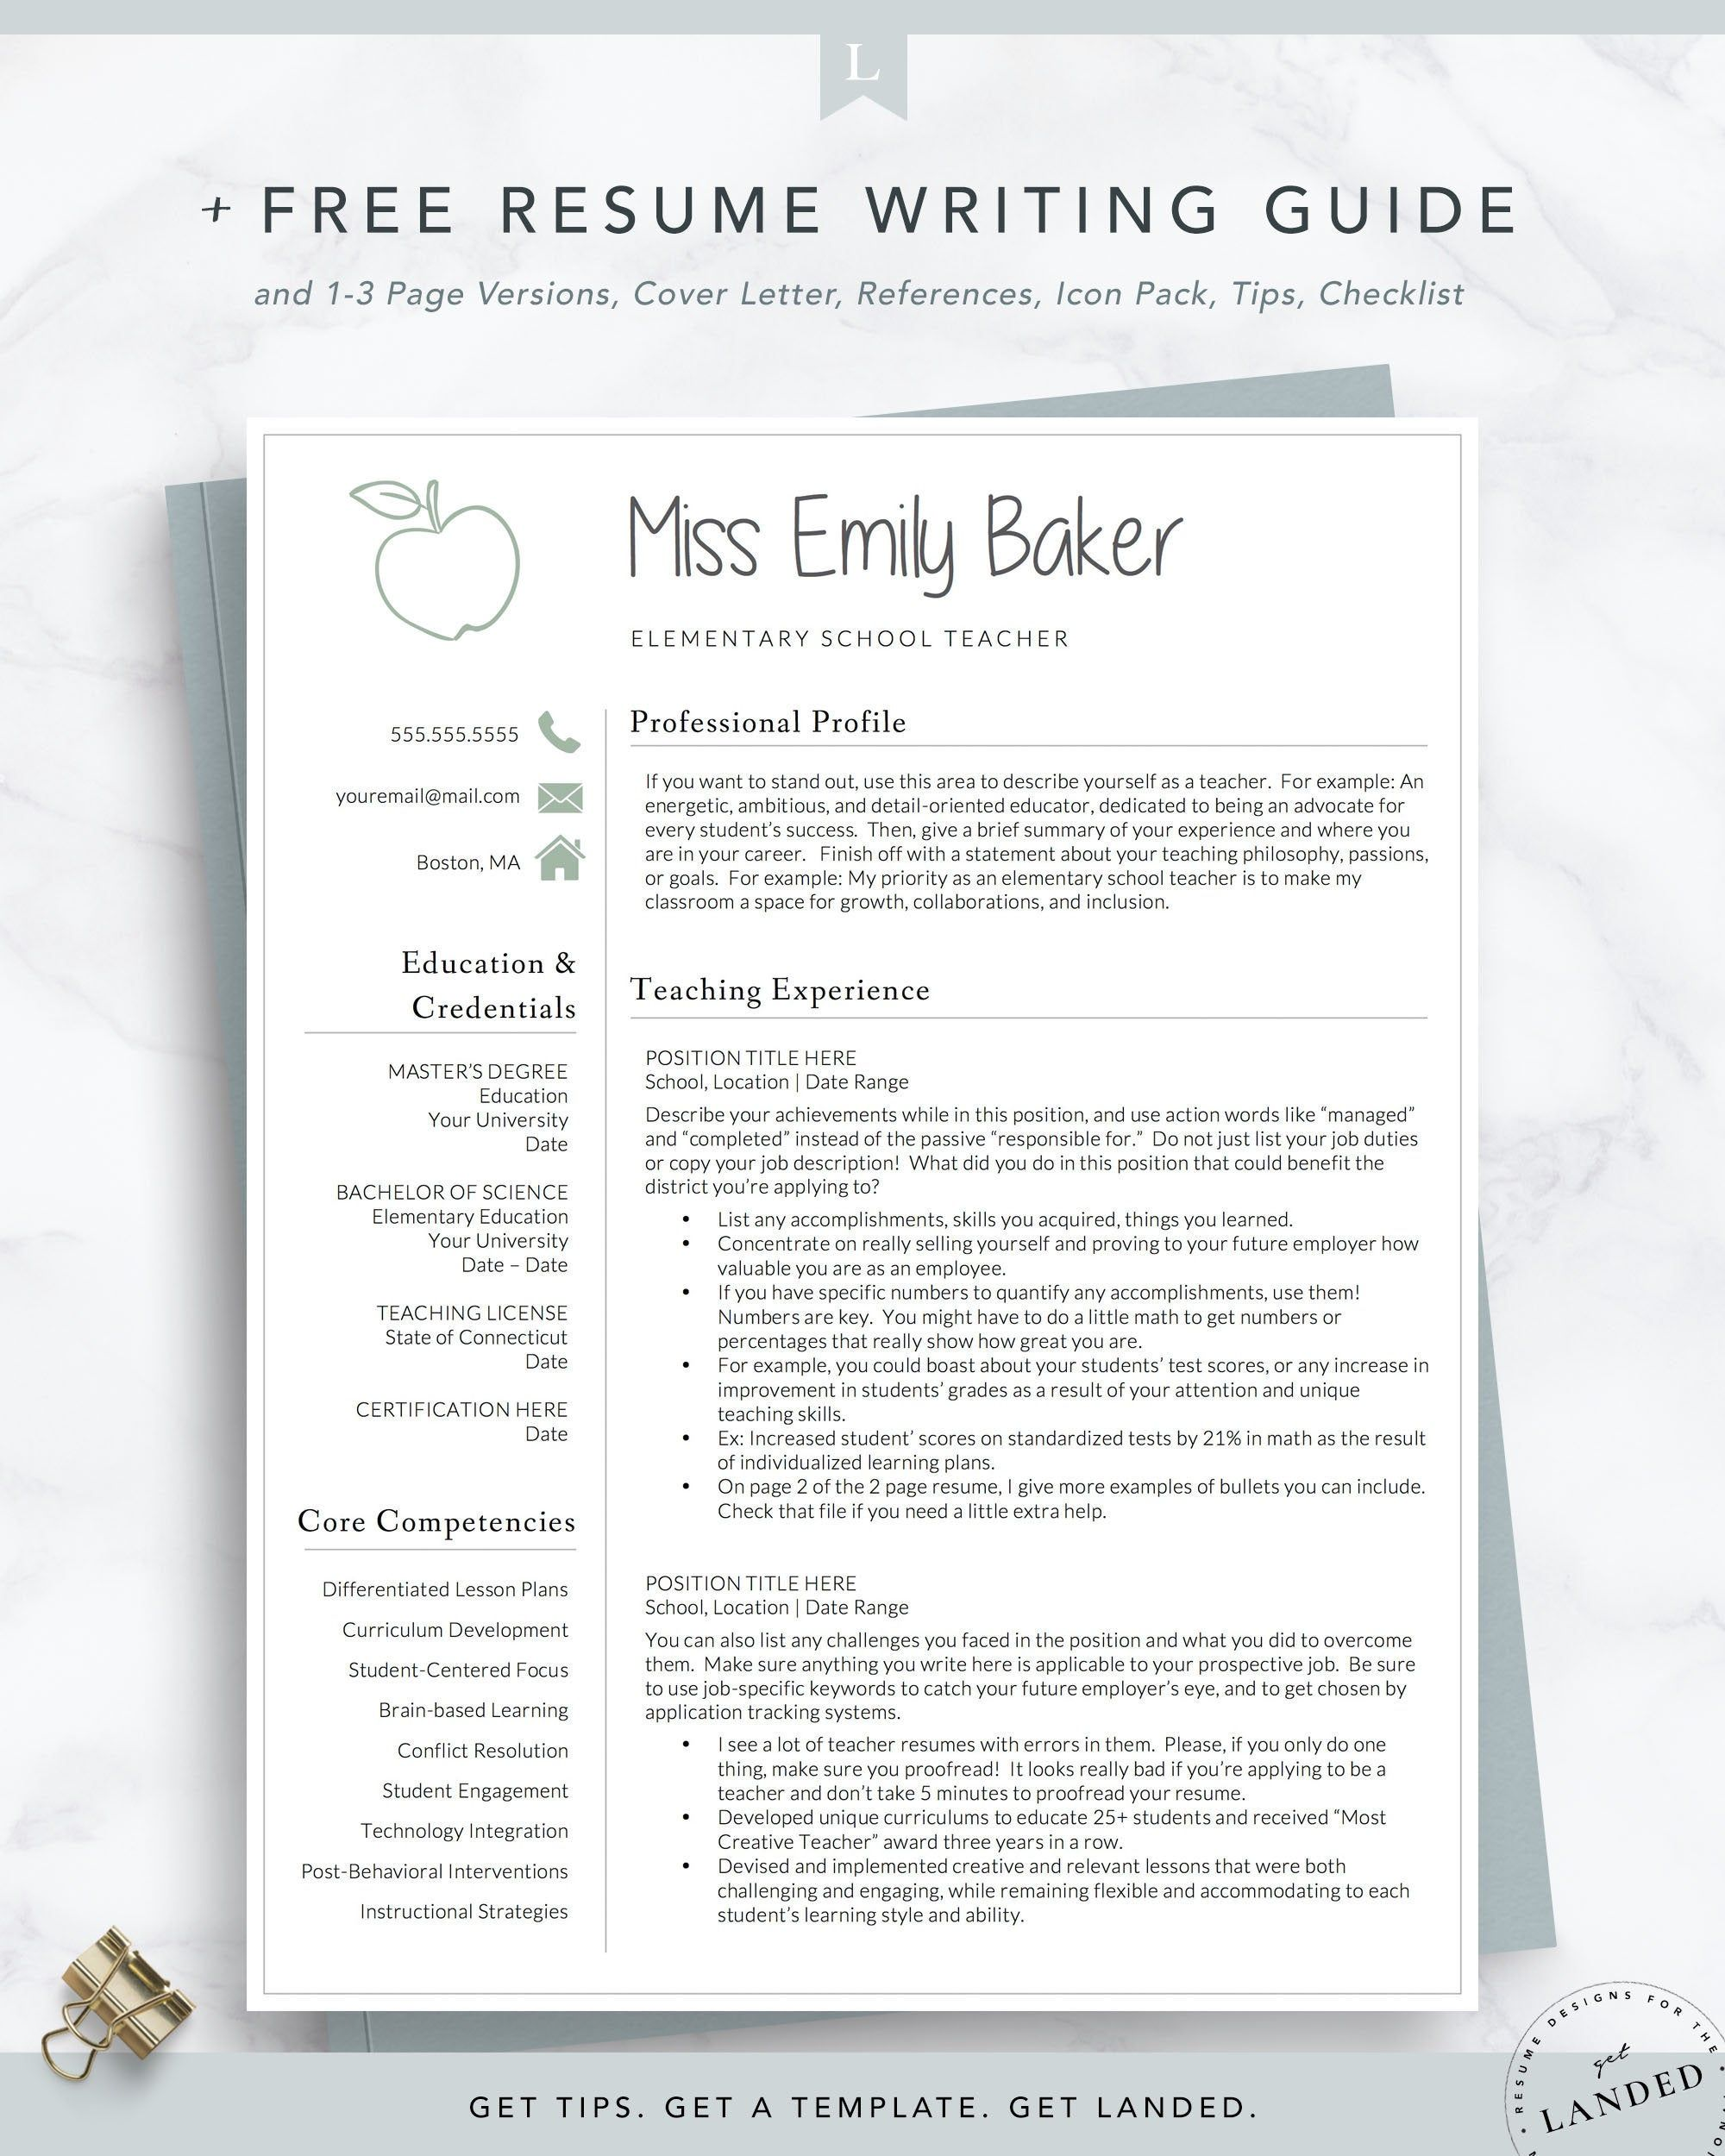 teacher resume template for word apple etsy in elementary teaching teachers free case Resume Resume Template For Teachers Free Download